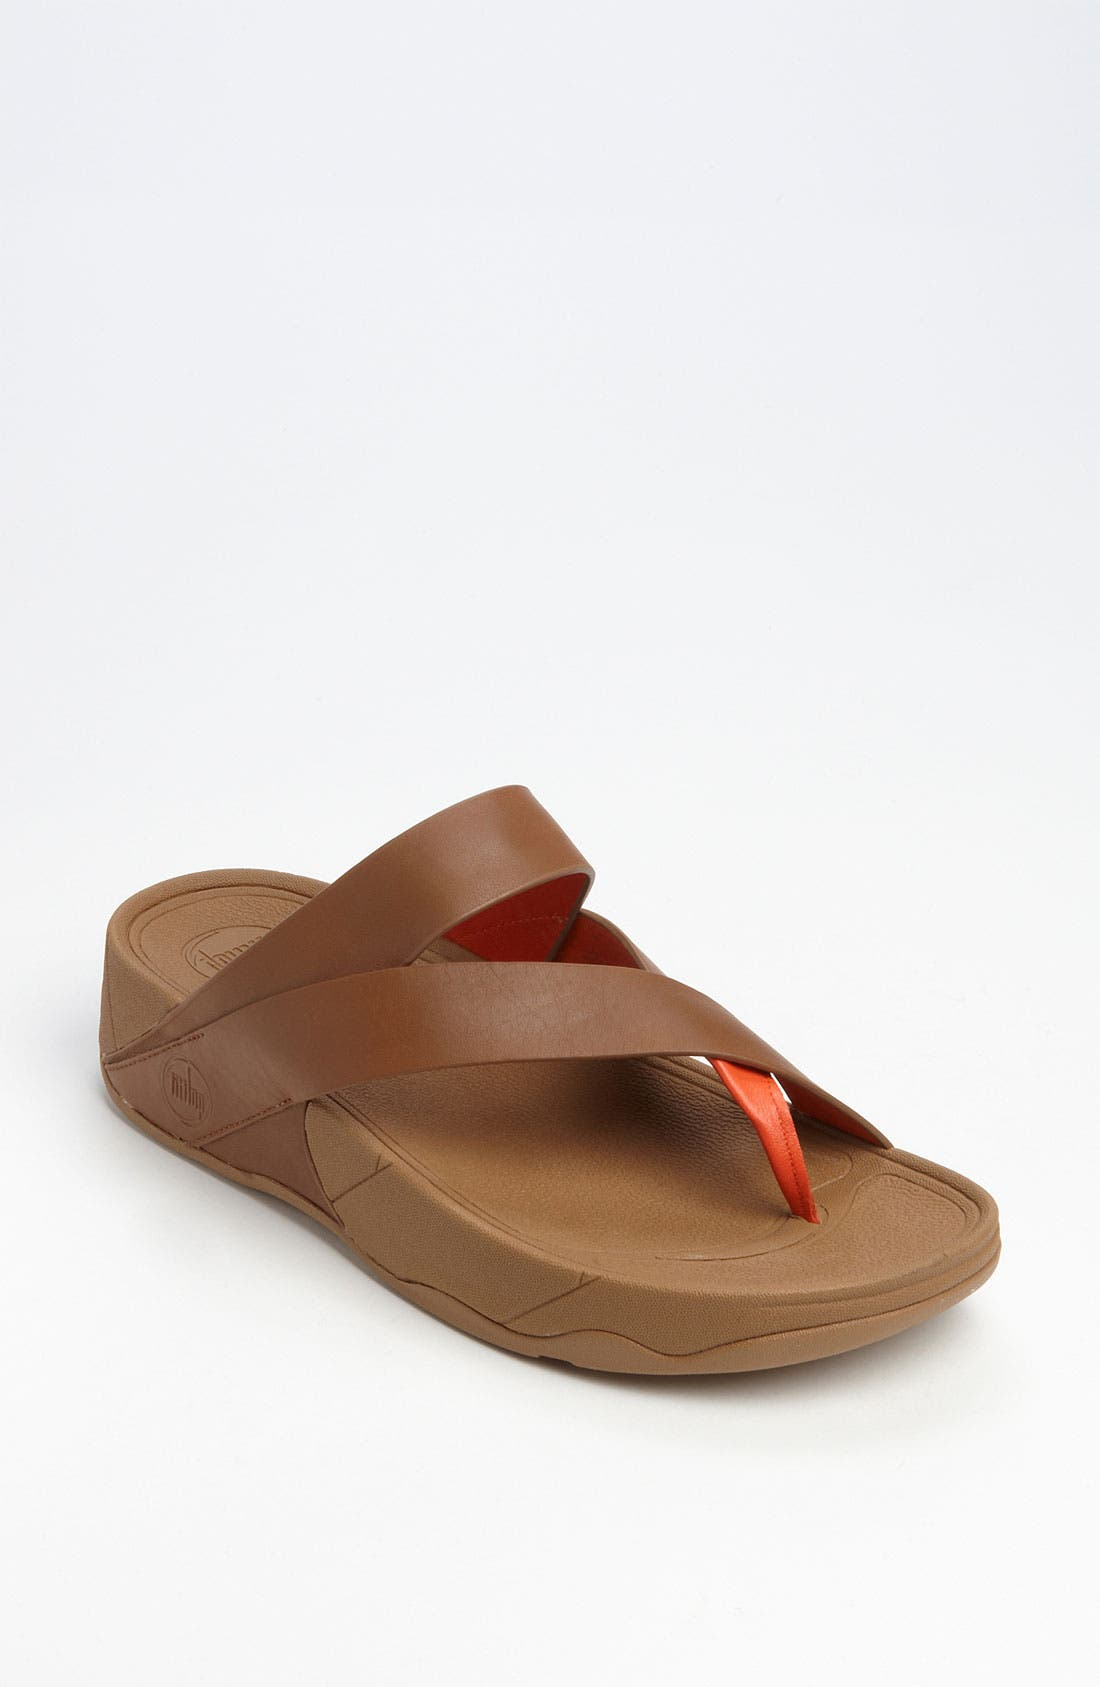 Alternate Image 1 Selected - FitFlop Sling Sandal (Women)